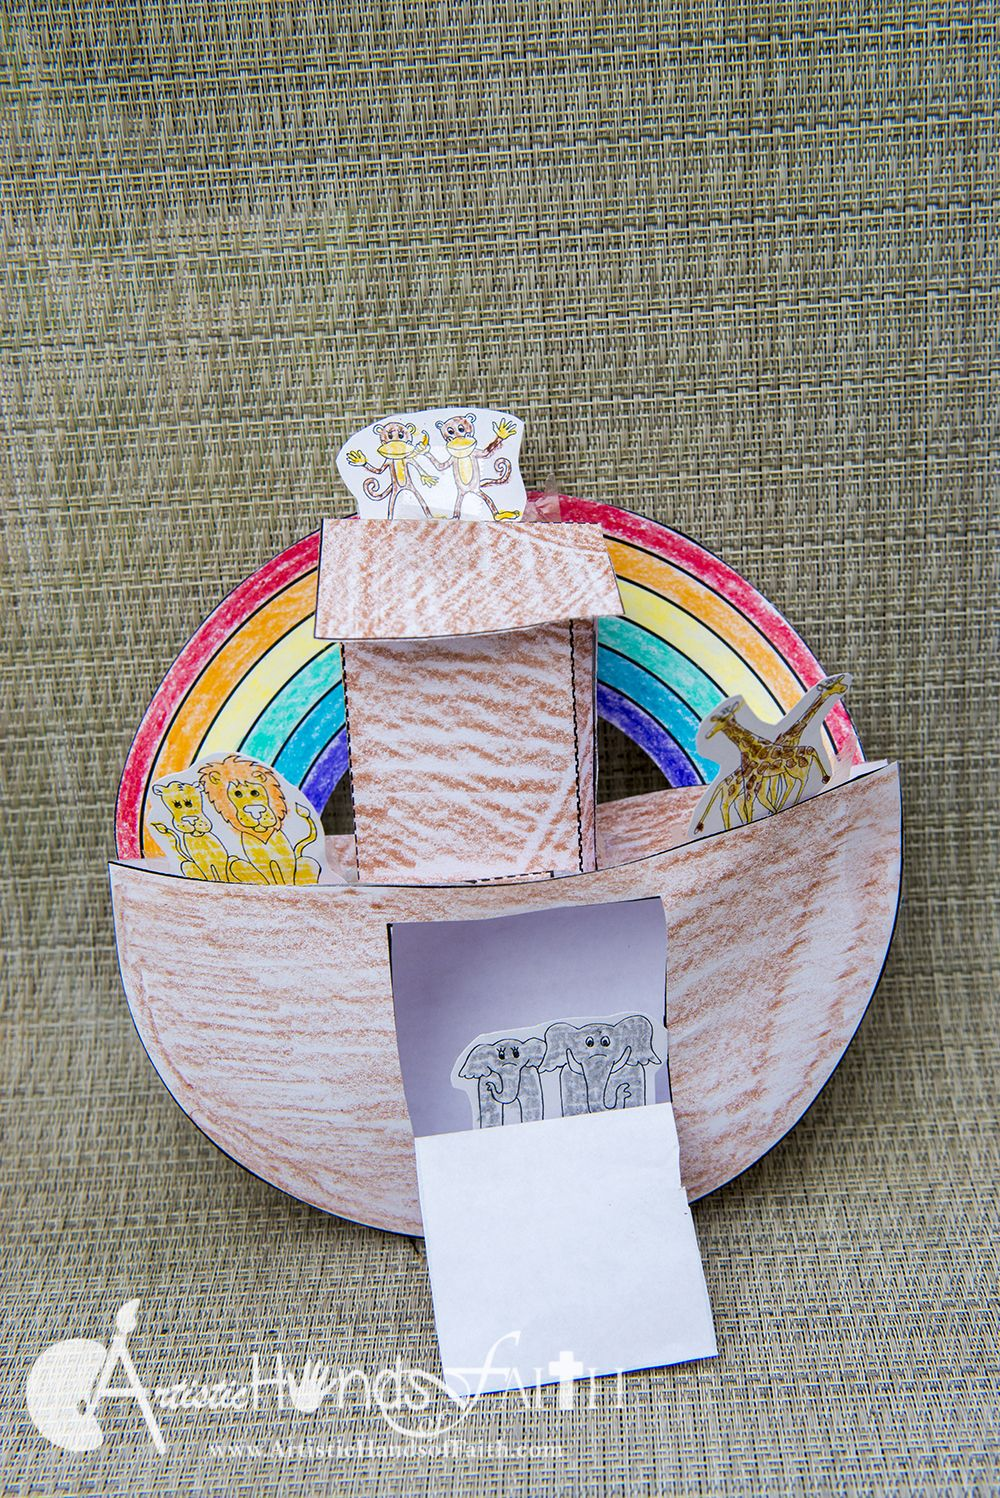 Noah's Ark Craft & Bible Lesson with FREE Printables at ...